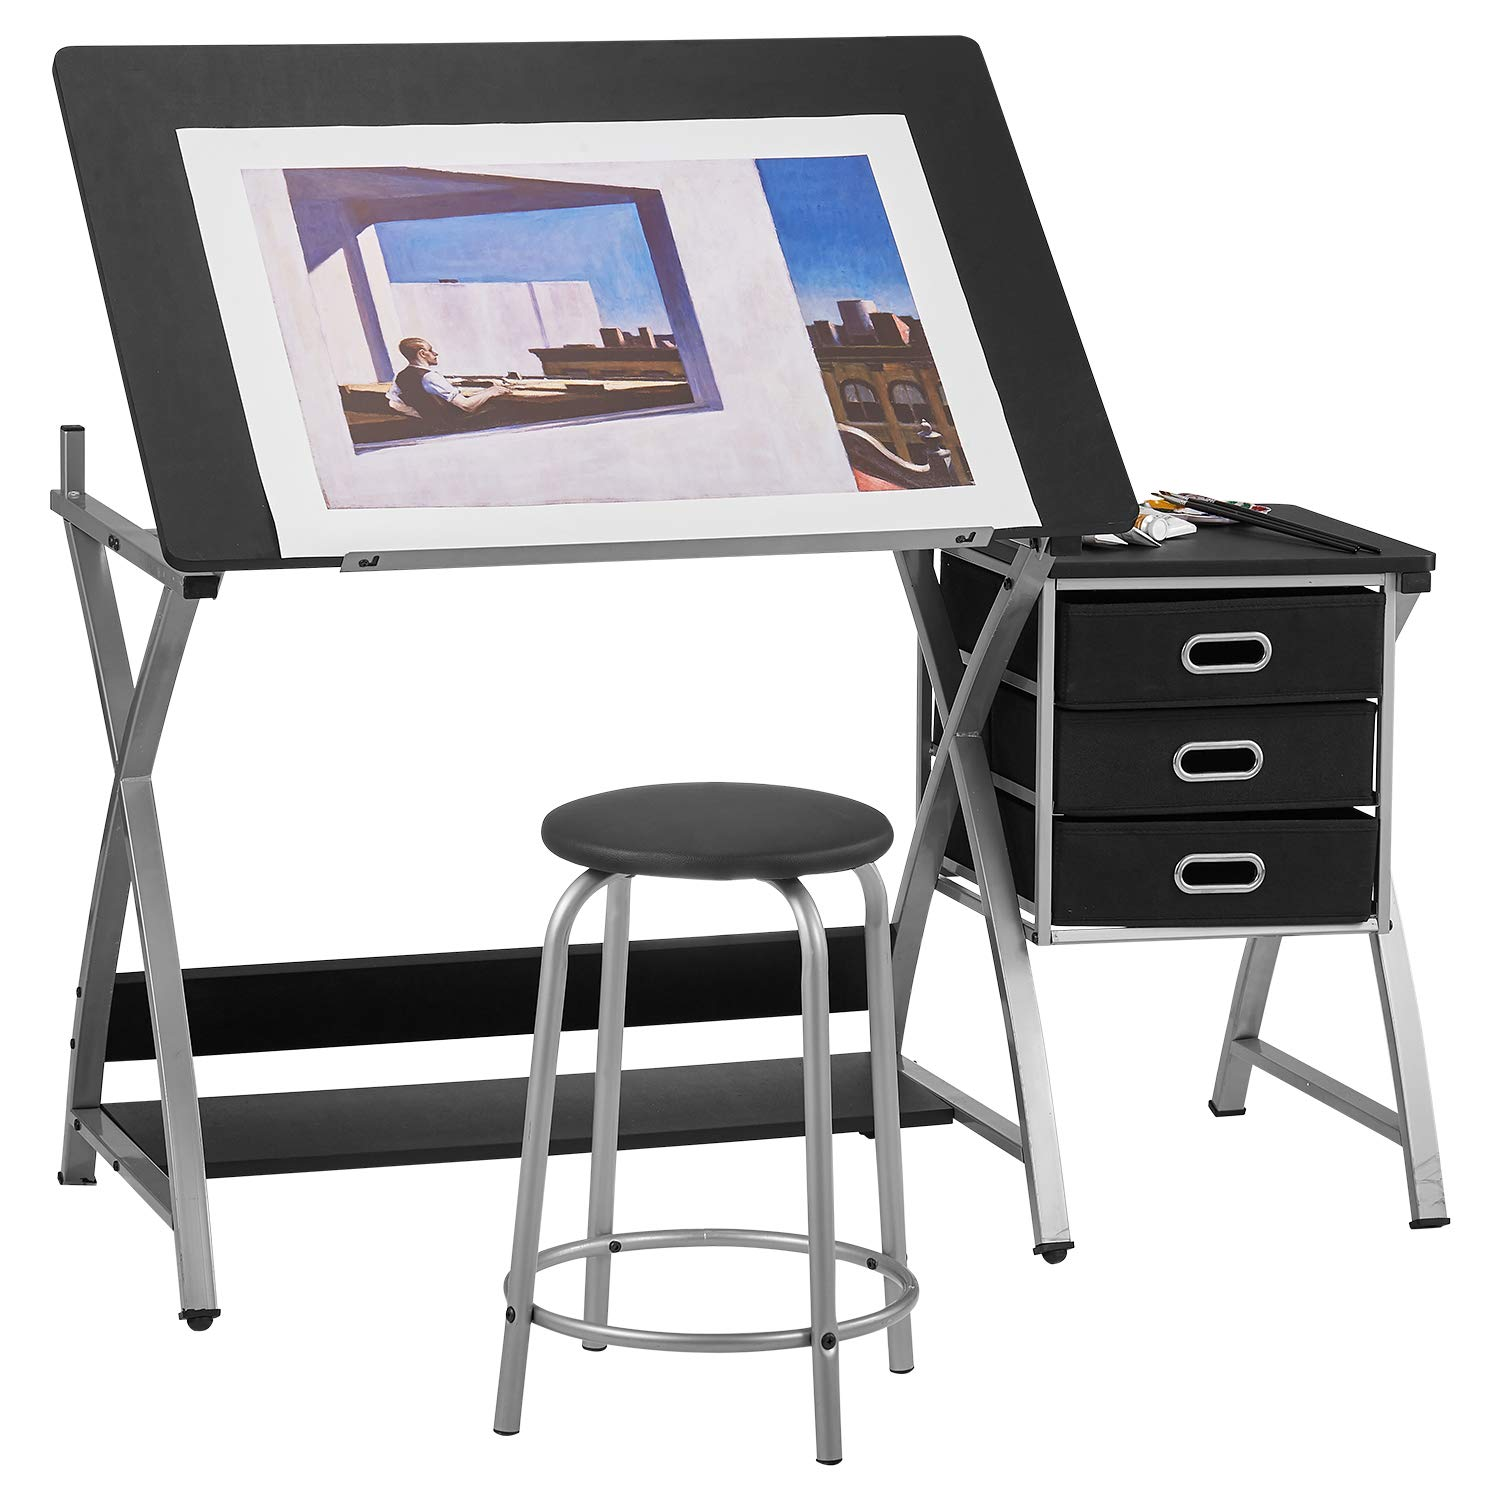 Kealive Drafting Table, Drawing Craft Art Table Craft Station with Angle Adjustable Top Stool and Storage Drawers, 50×23.6×29.9 inches by kealive